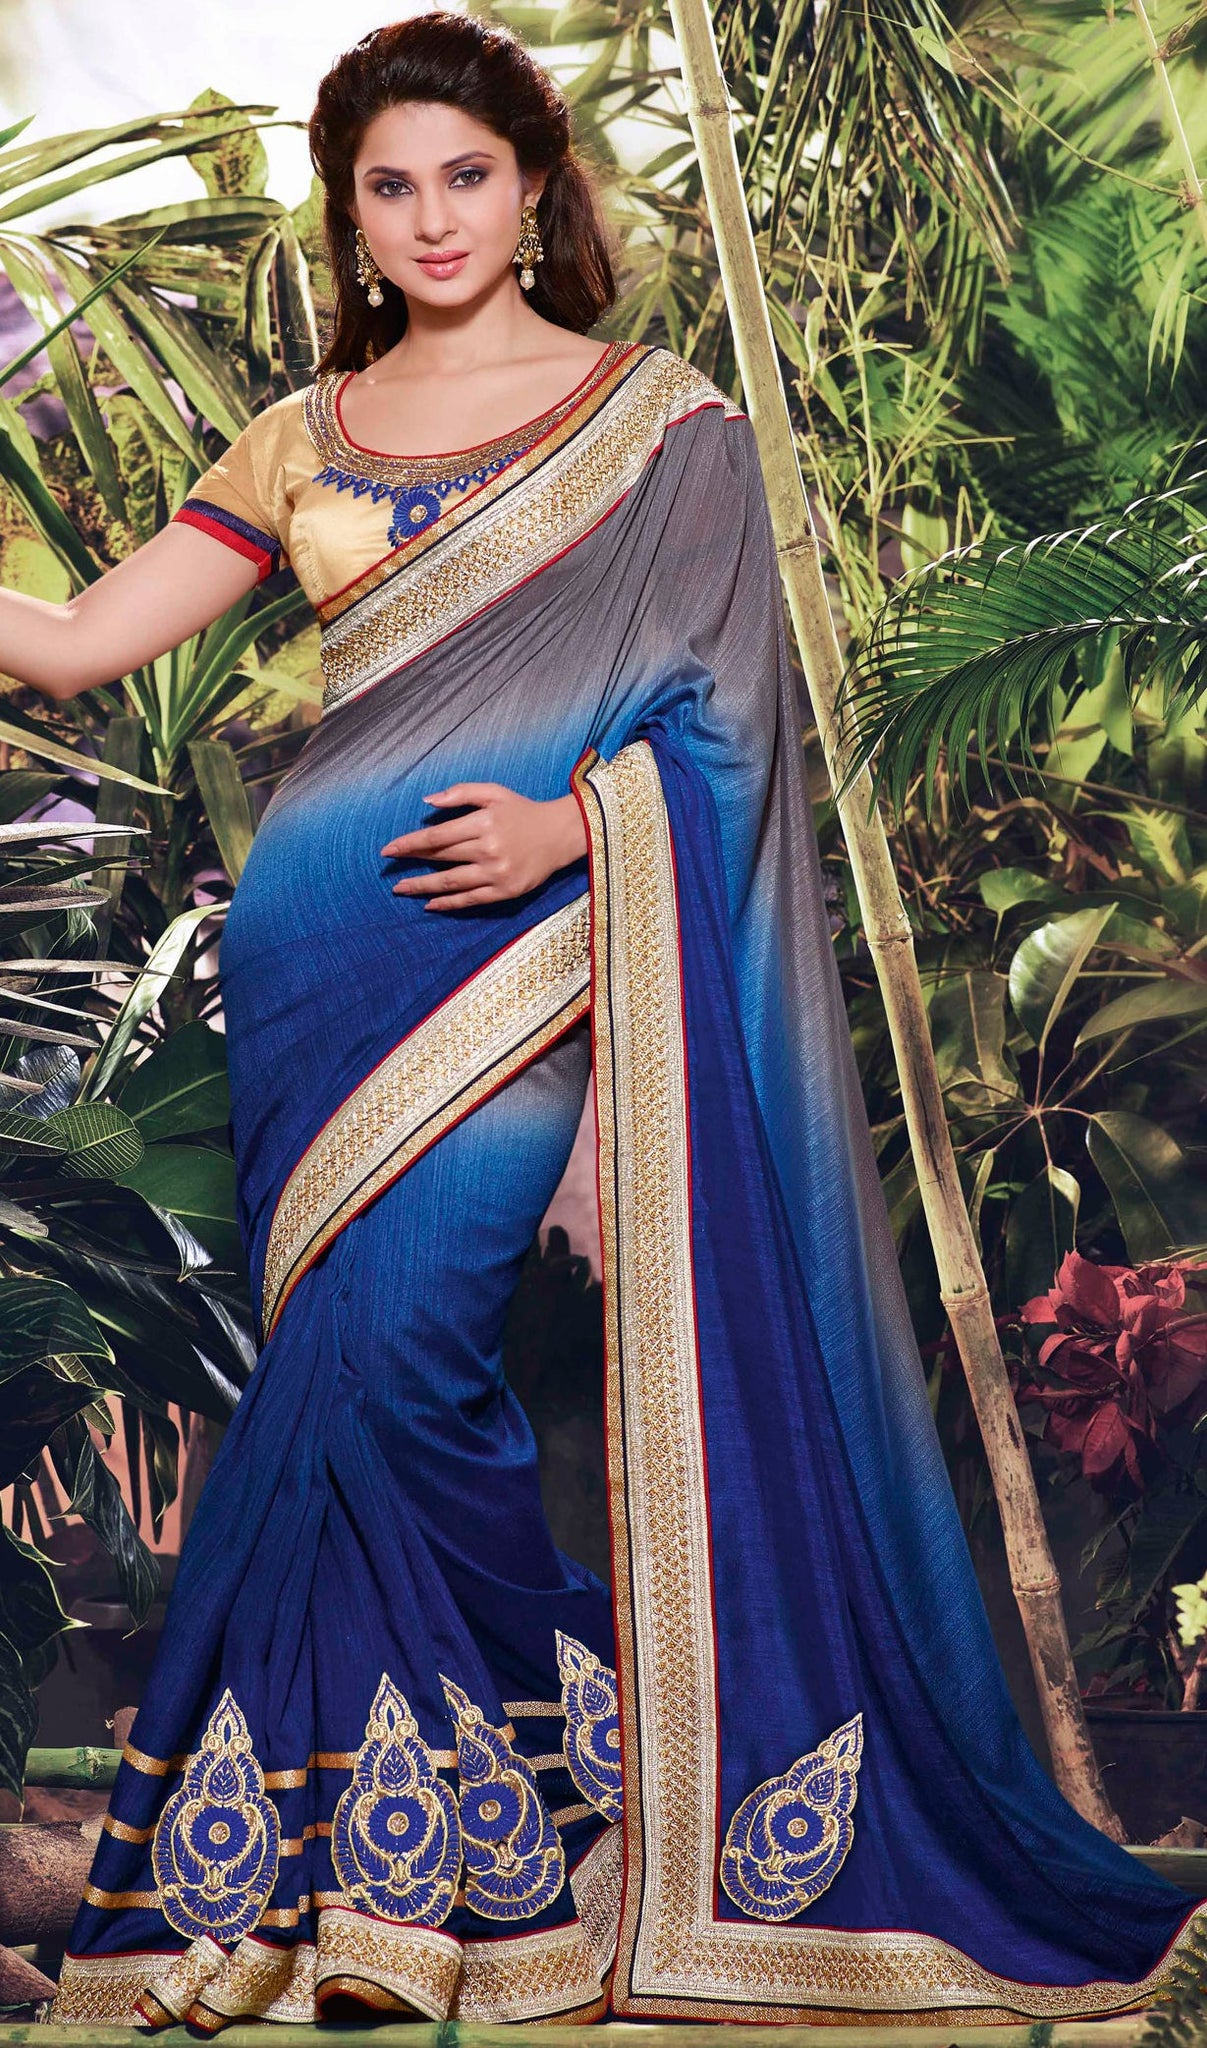 jennifer-winget-in-saree